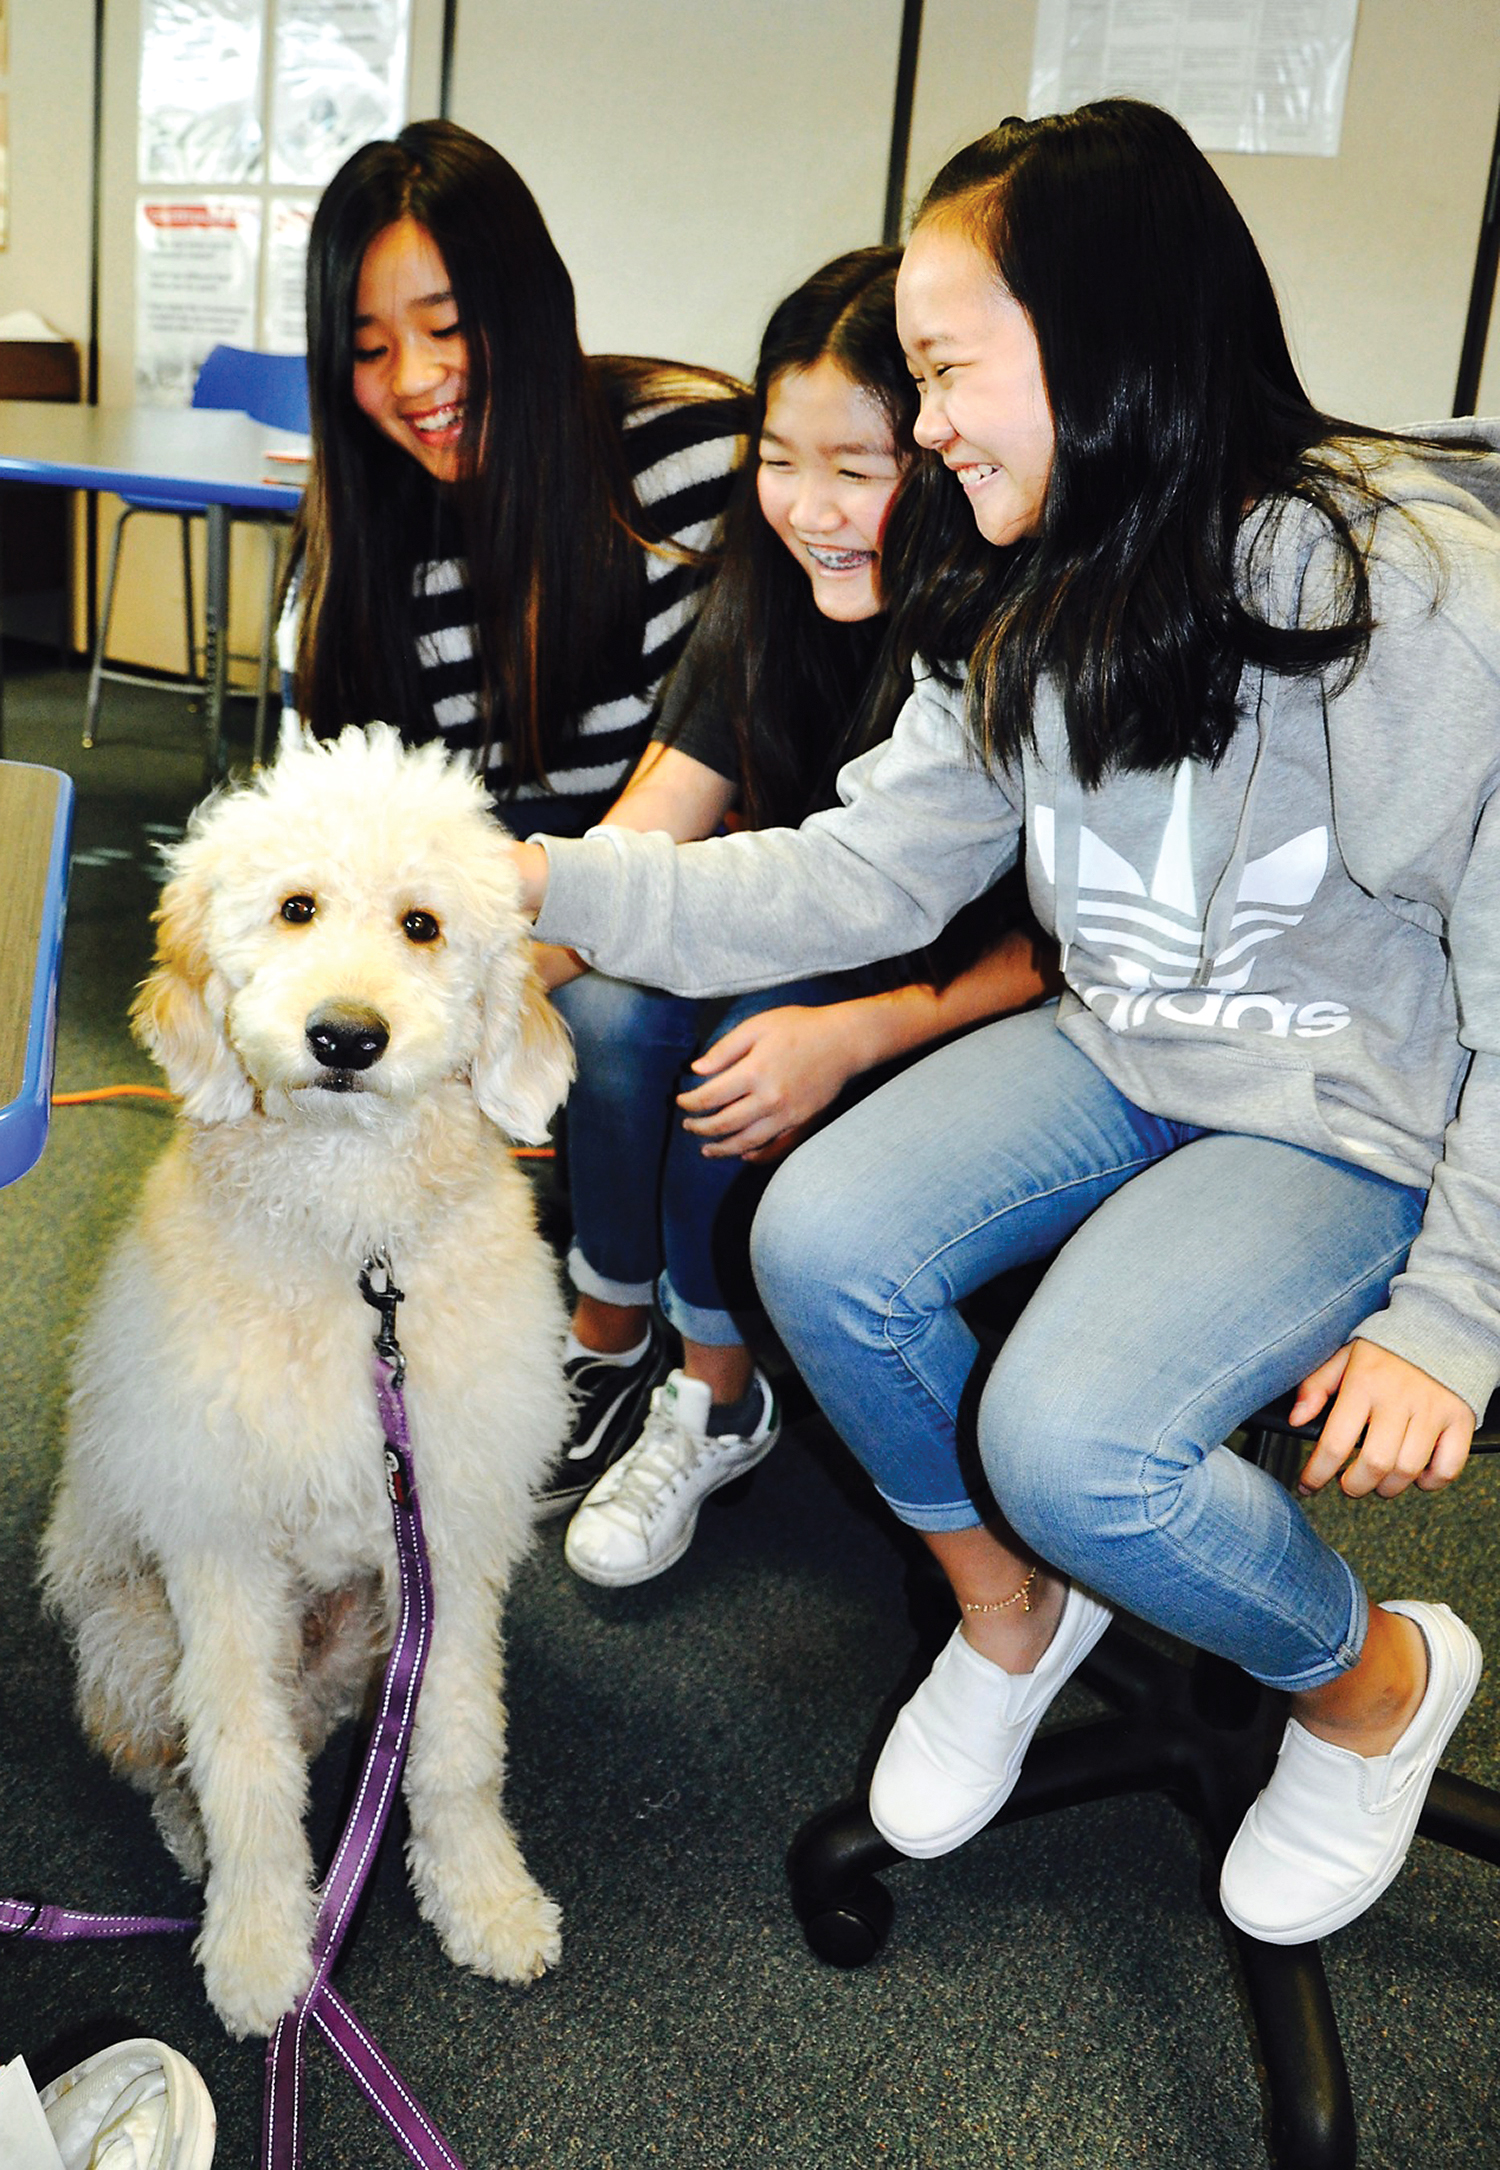 Laker the Goldendoodle puppy is providing comfort and companionship to South Pointe  students.